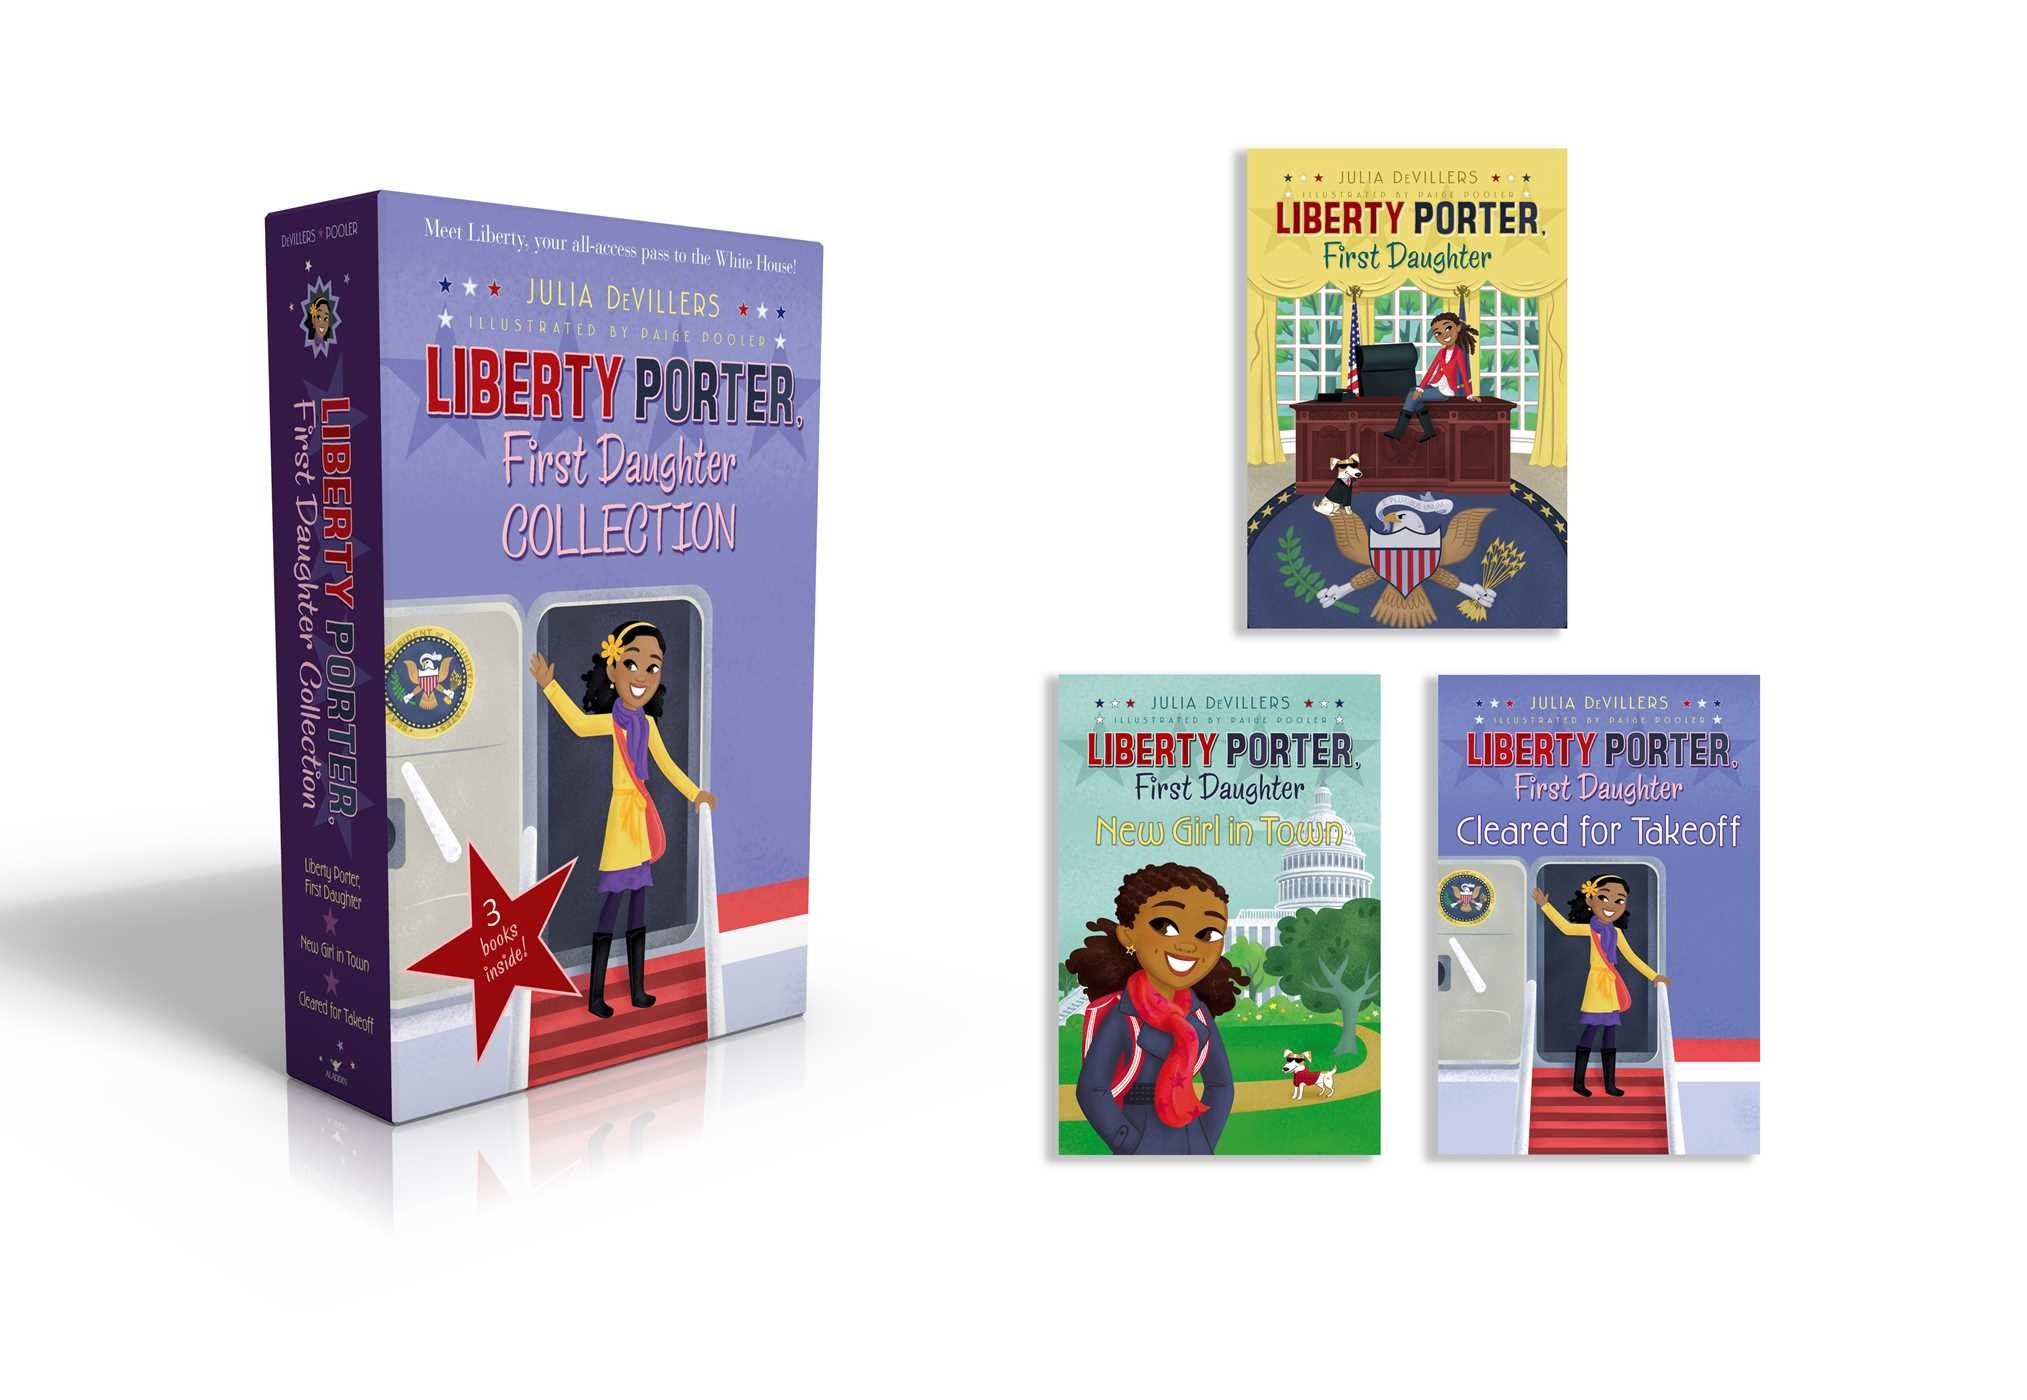 Liberty porter first daughter collection 9781481485425.in01